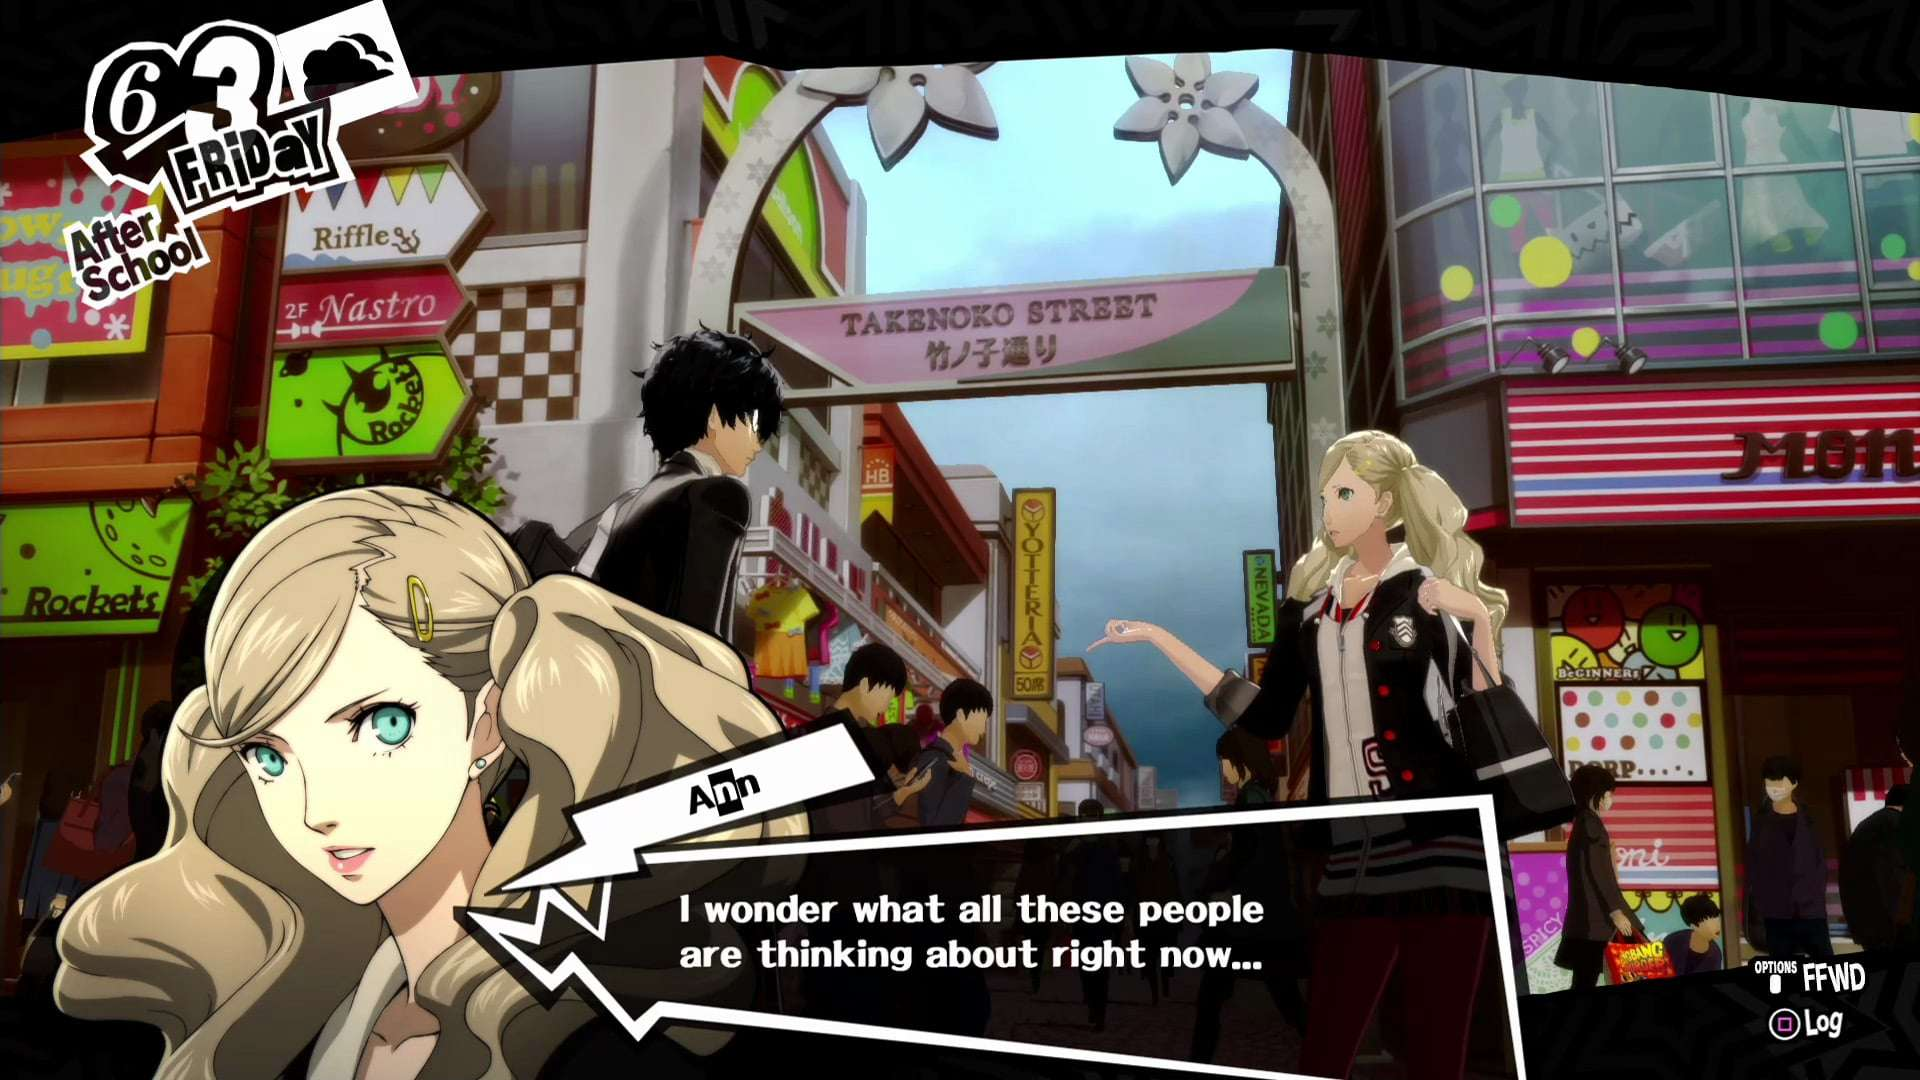 Usgamer Persona 5 Interview With Katsura Hashino About Dungeons Game Ps4 Region 3 English Thats One Of The Biggest Things That Motivated Us While Working On